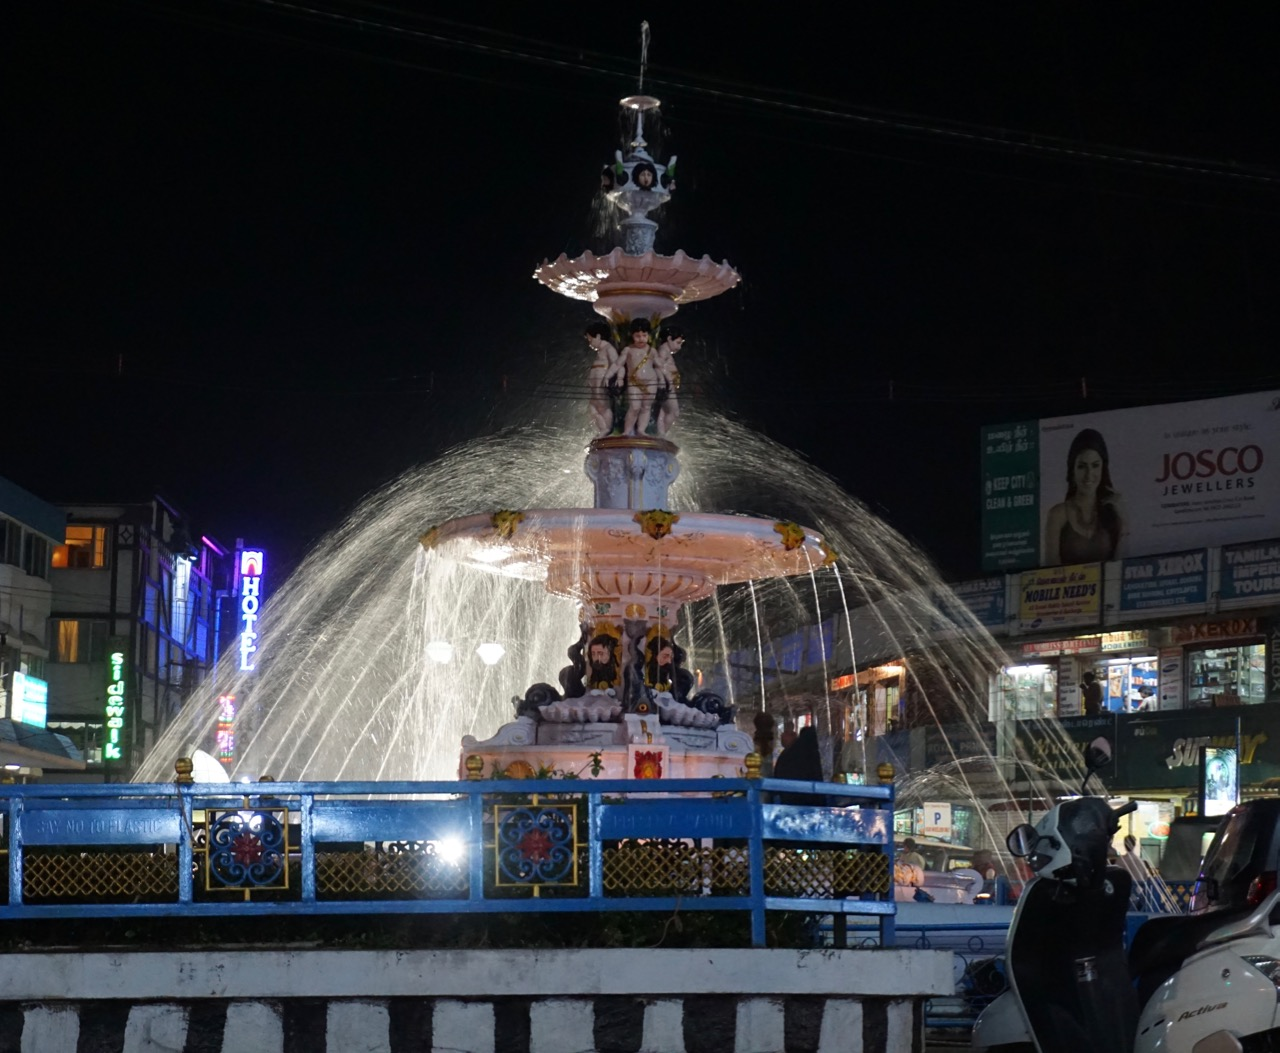 The fountain at Charring Cross.